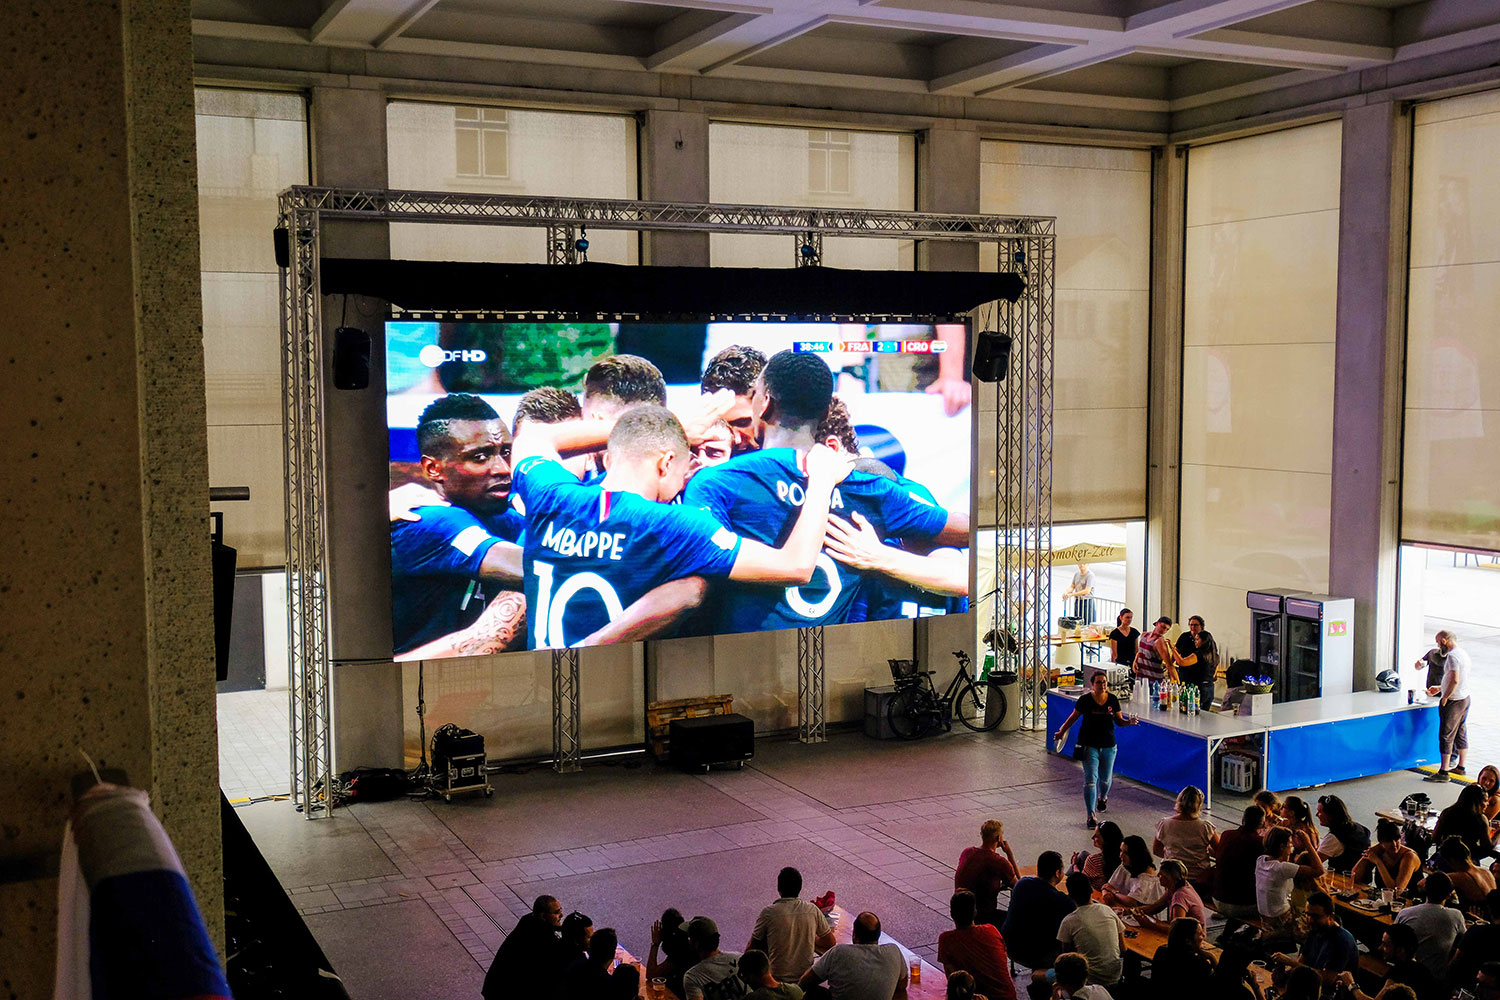 Spiel FRA vs CRO auf LED-Wand am Public Viewing in Schaan